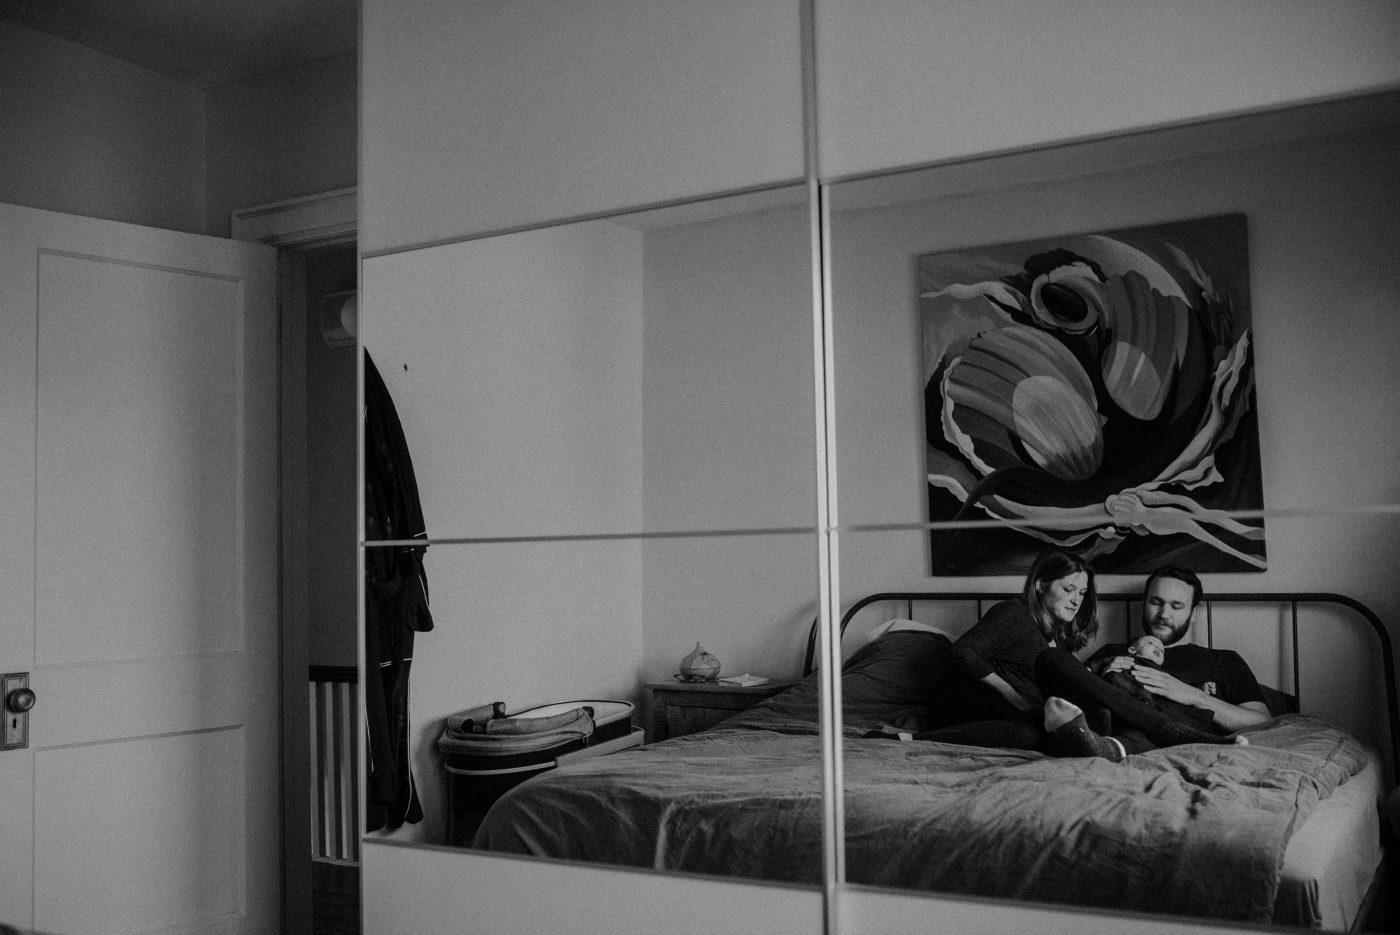 newborn family session, toronto. Reflection in mirror of family in bed.